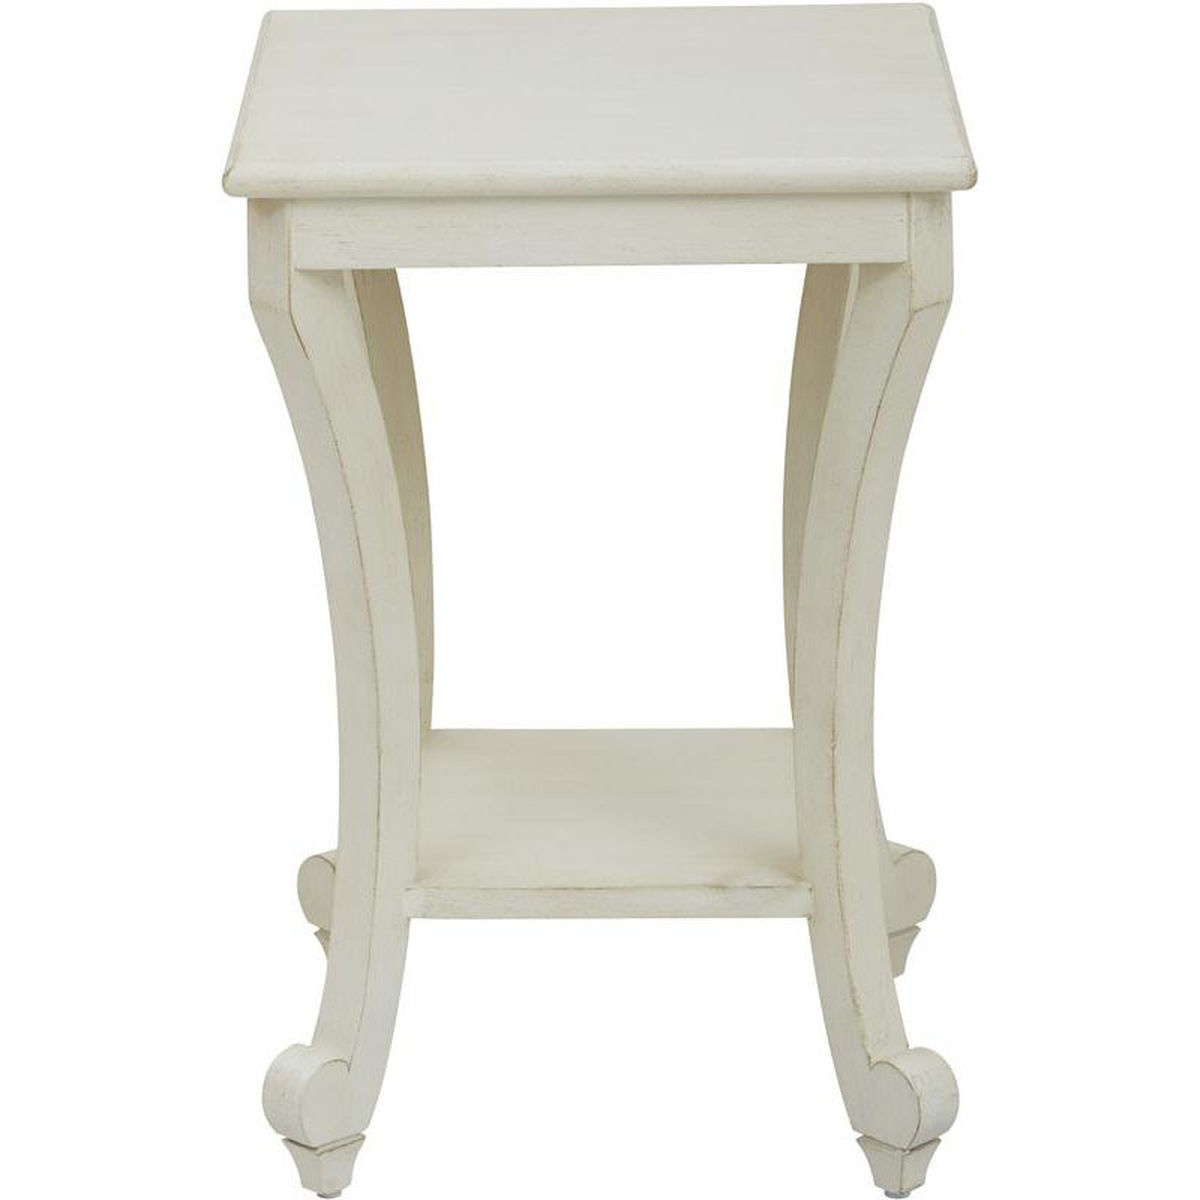 daren cottage accent table bizchair office star products main our osp designs country now glass lamp shades half round top marble bedside pottery barn teen floor skirts decorator